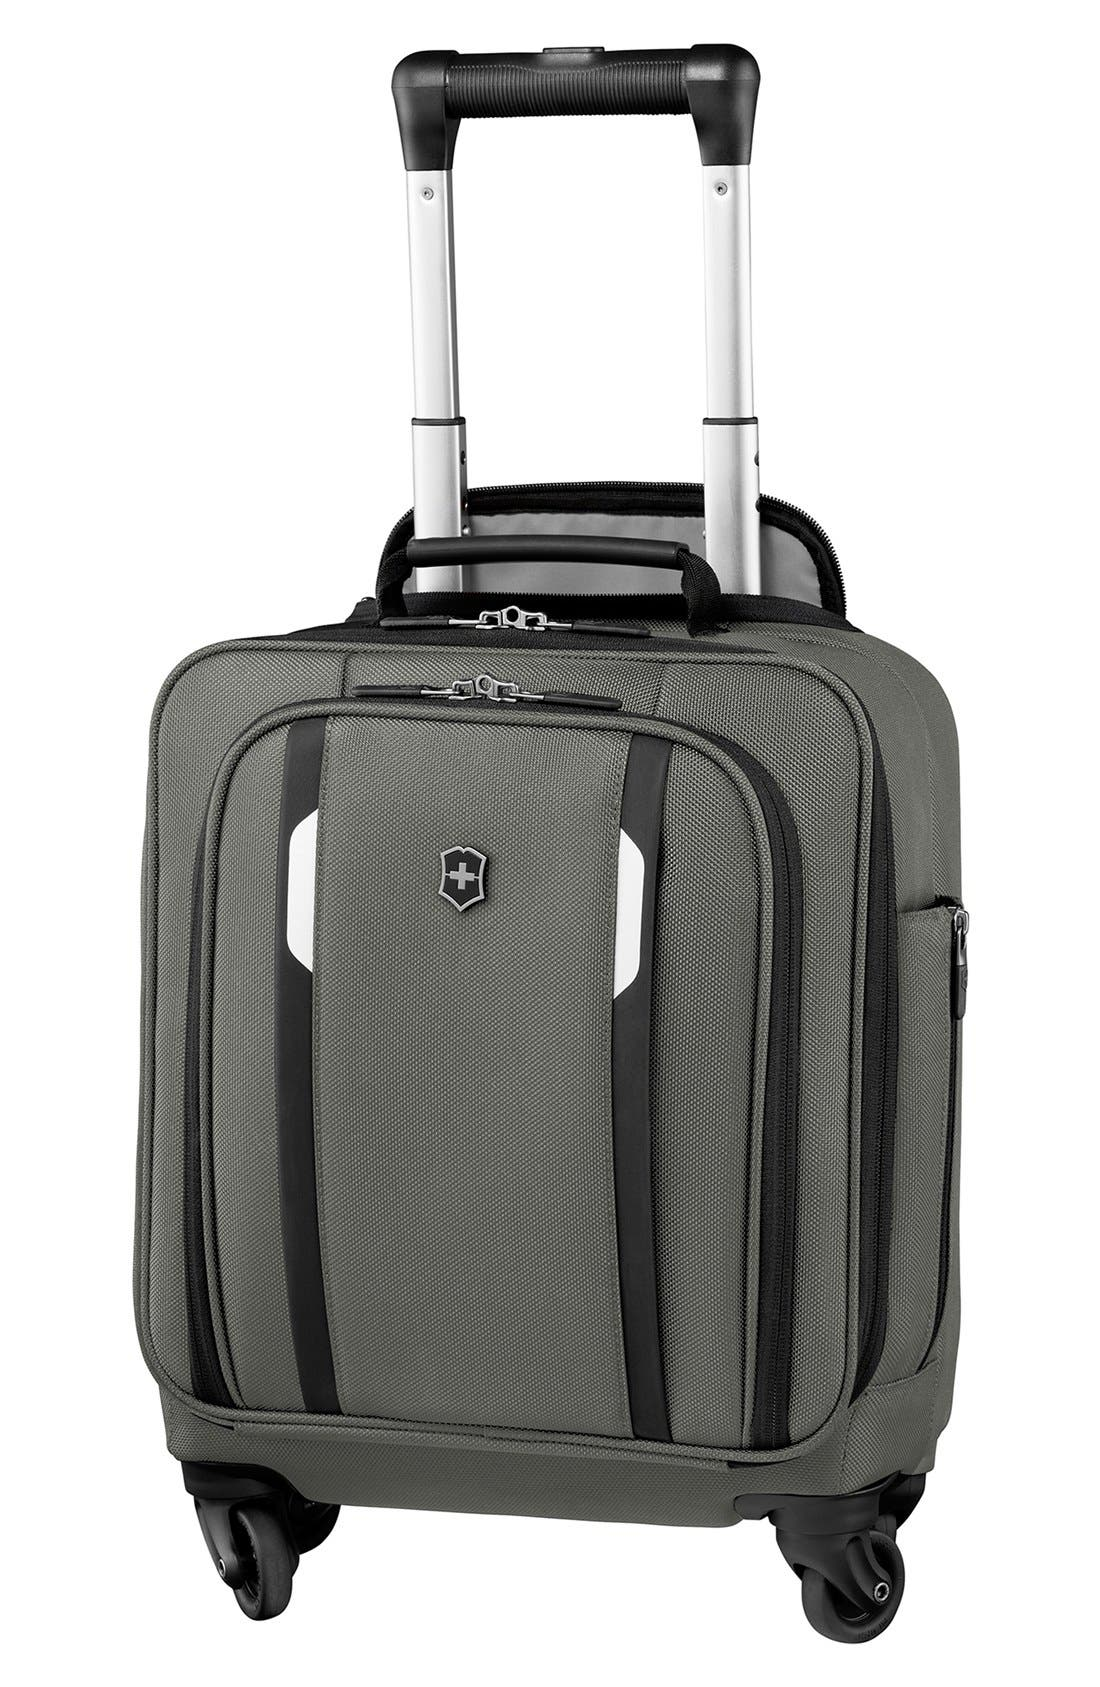 Alternate Image 1 Selected - Victorinox Swiss Army® 'WT 5.0' Wheeled Tote Bag